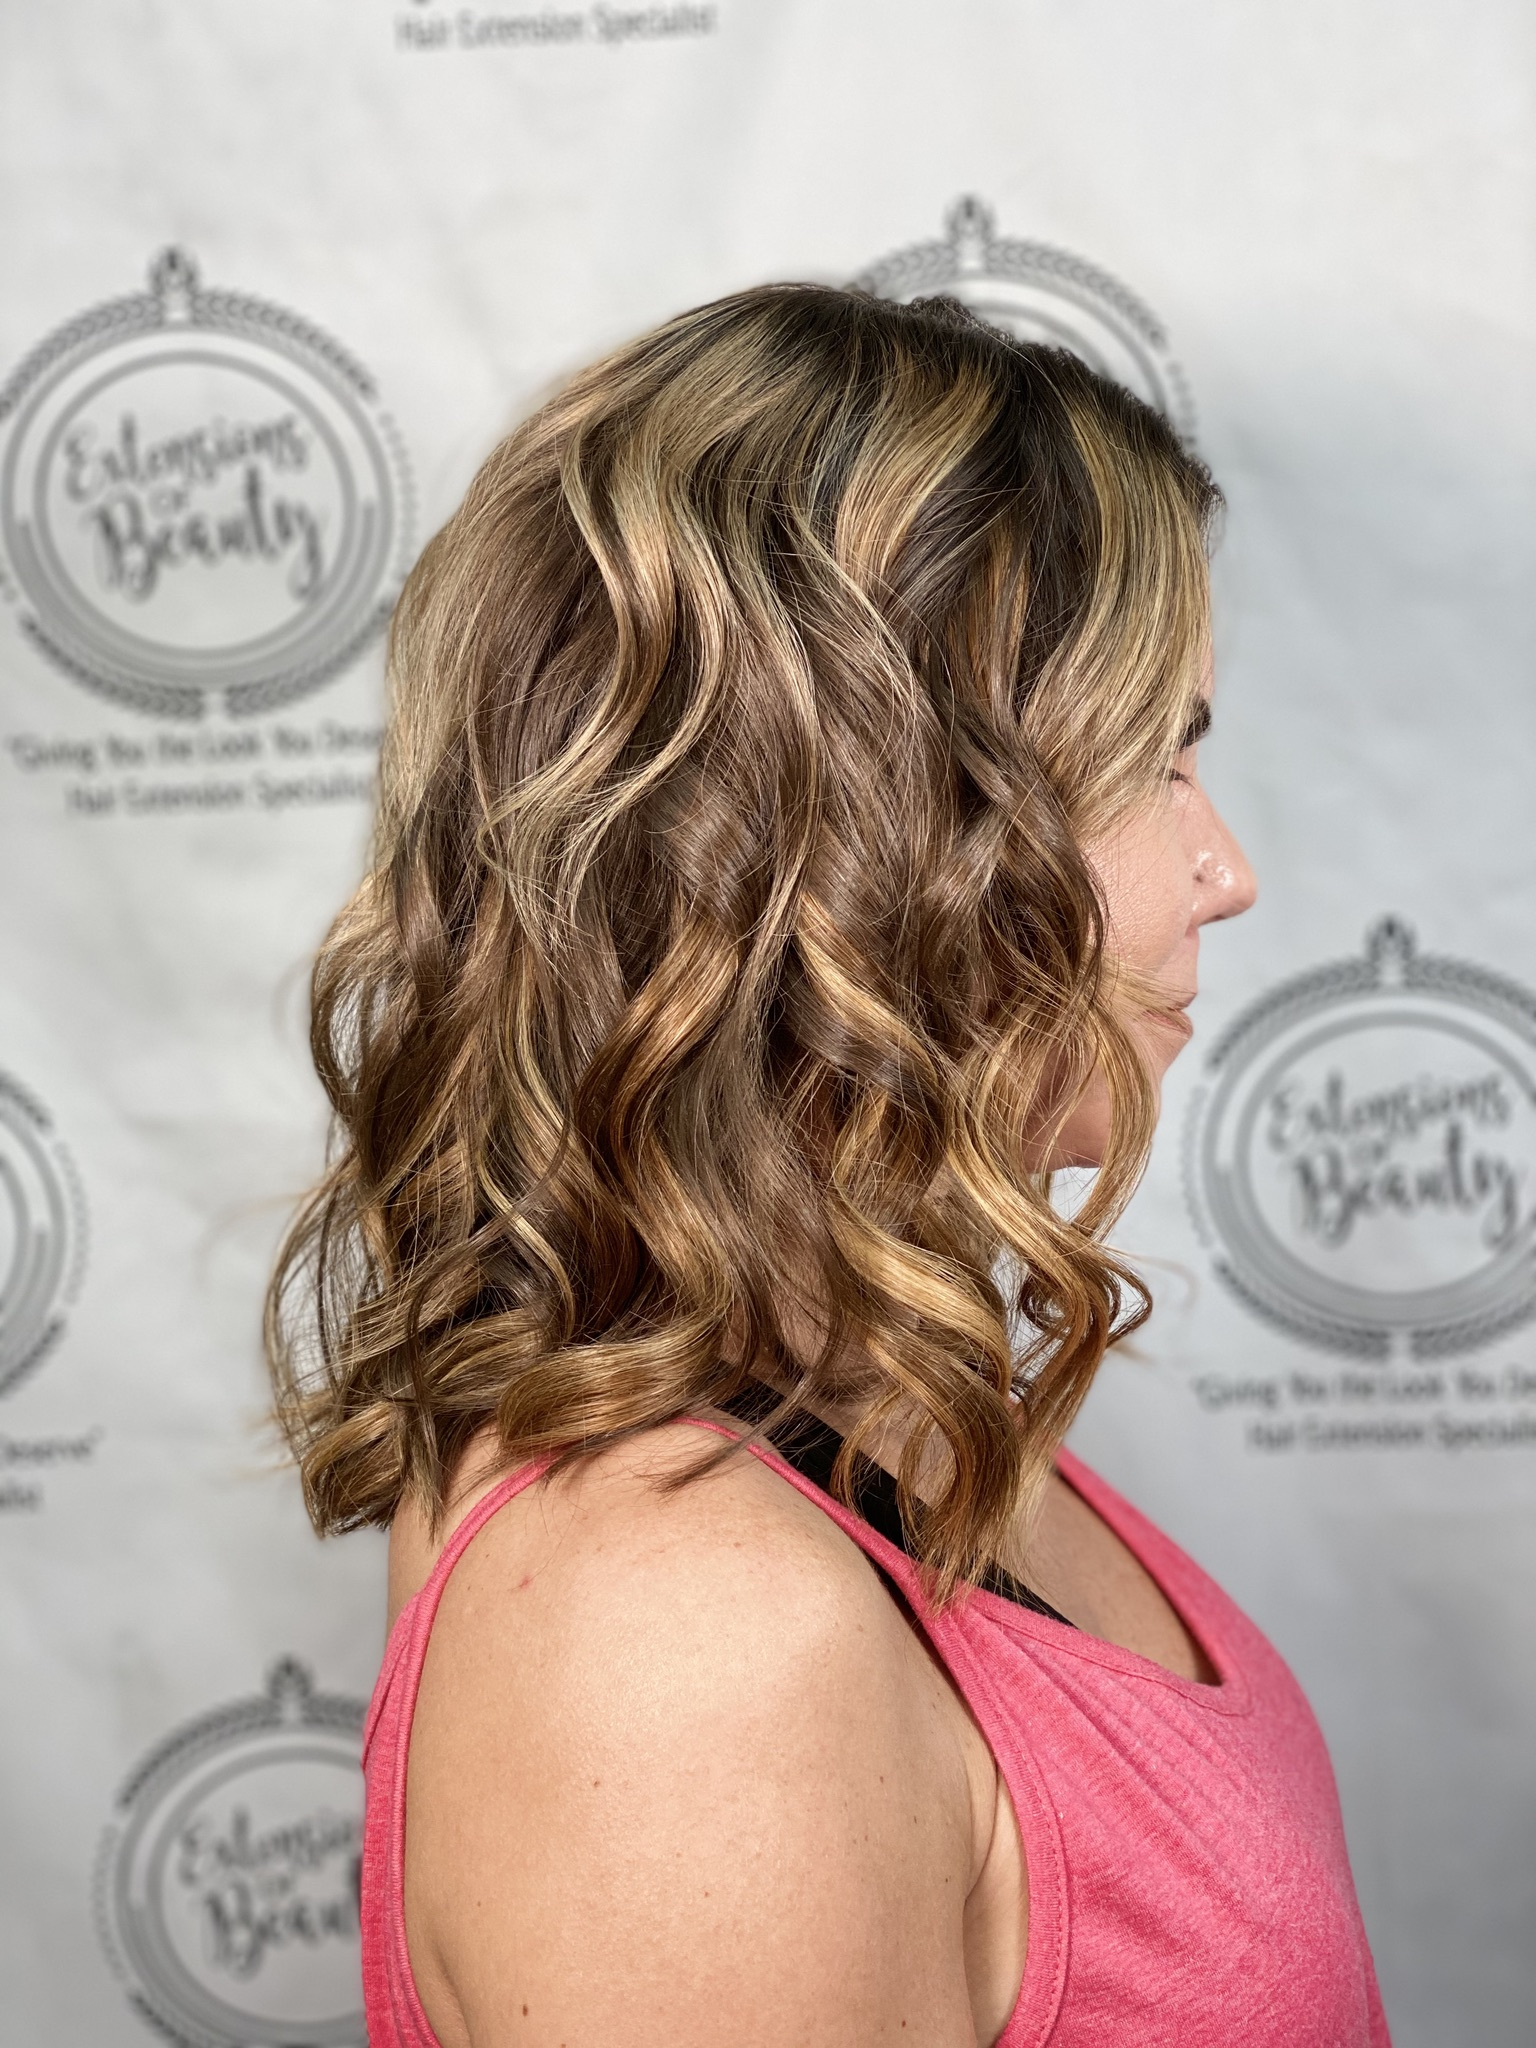 Highlights and Hair Extensions